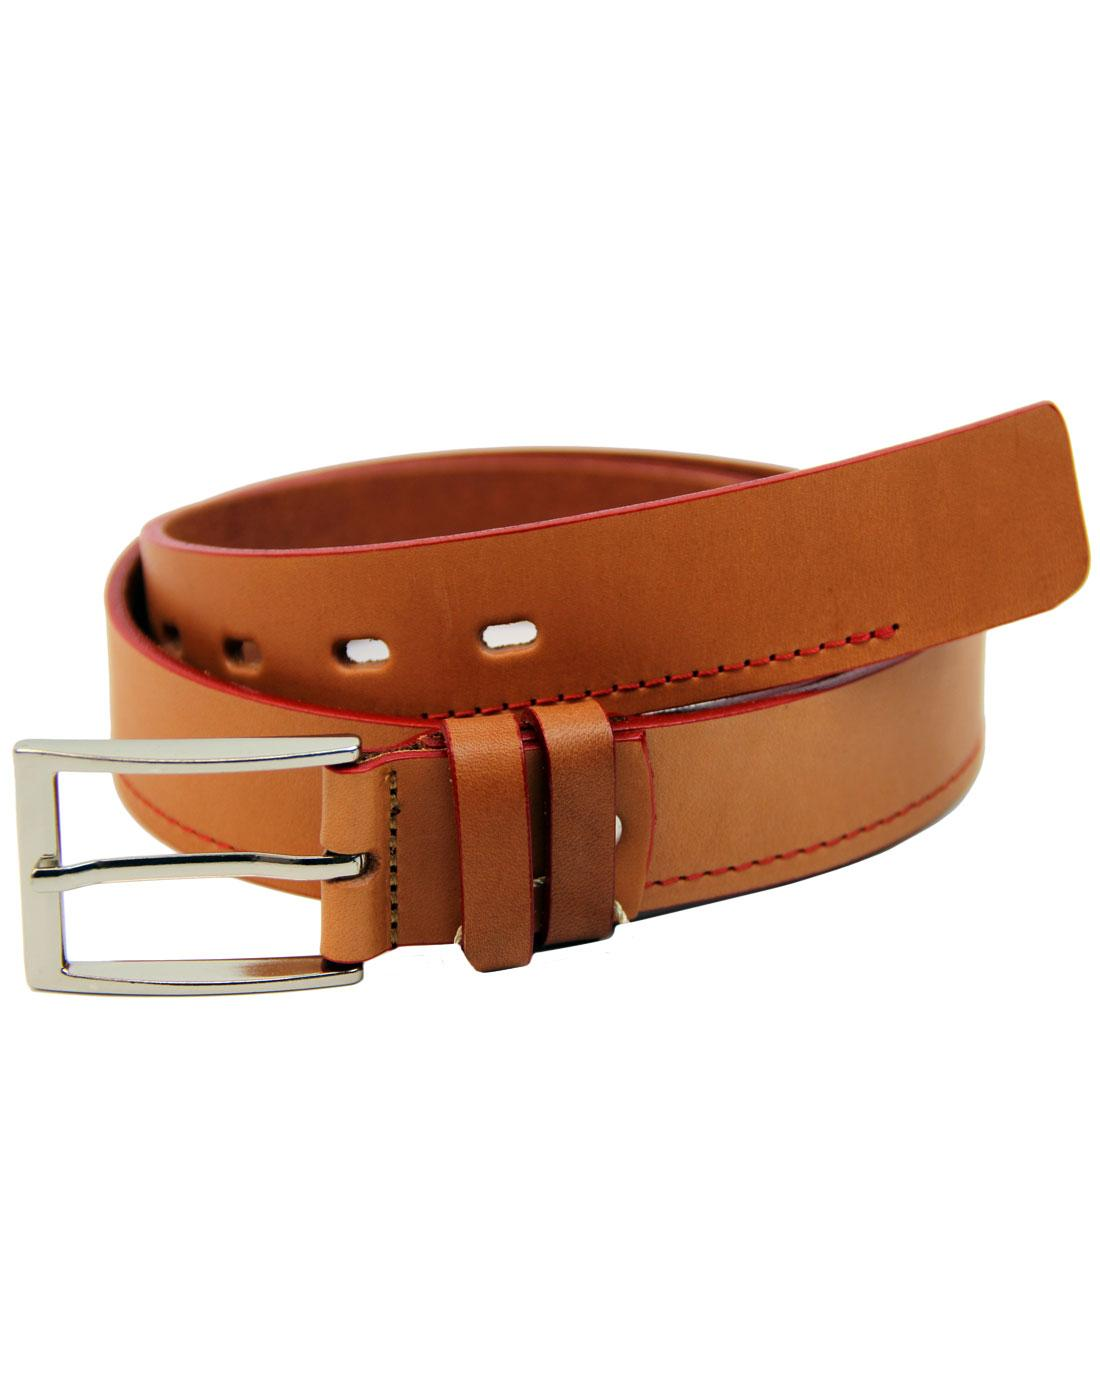 LACUZZO Retro Mod Red Stitch Leather Belt COGNAC